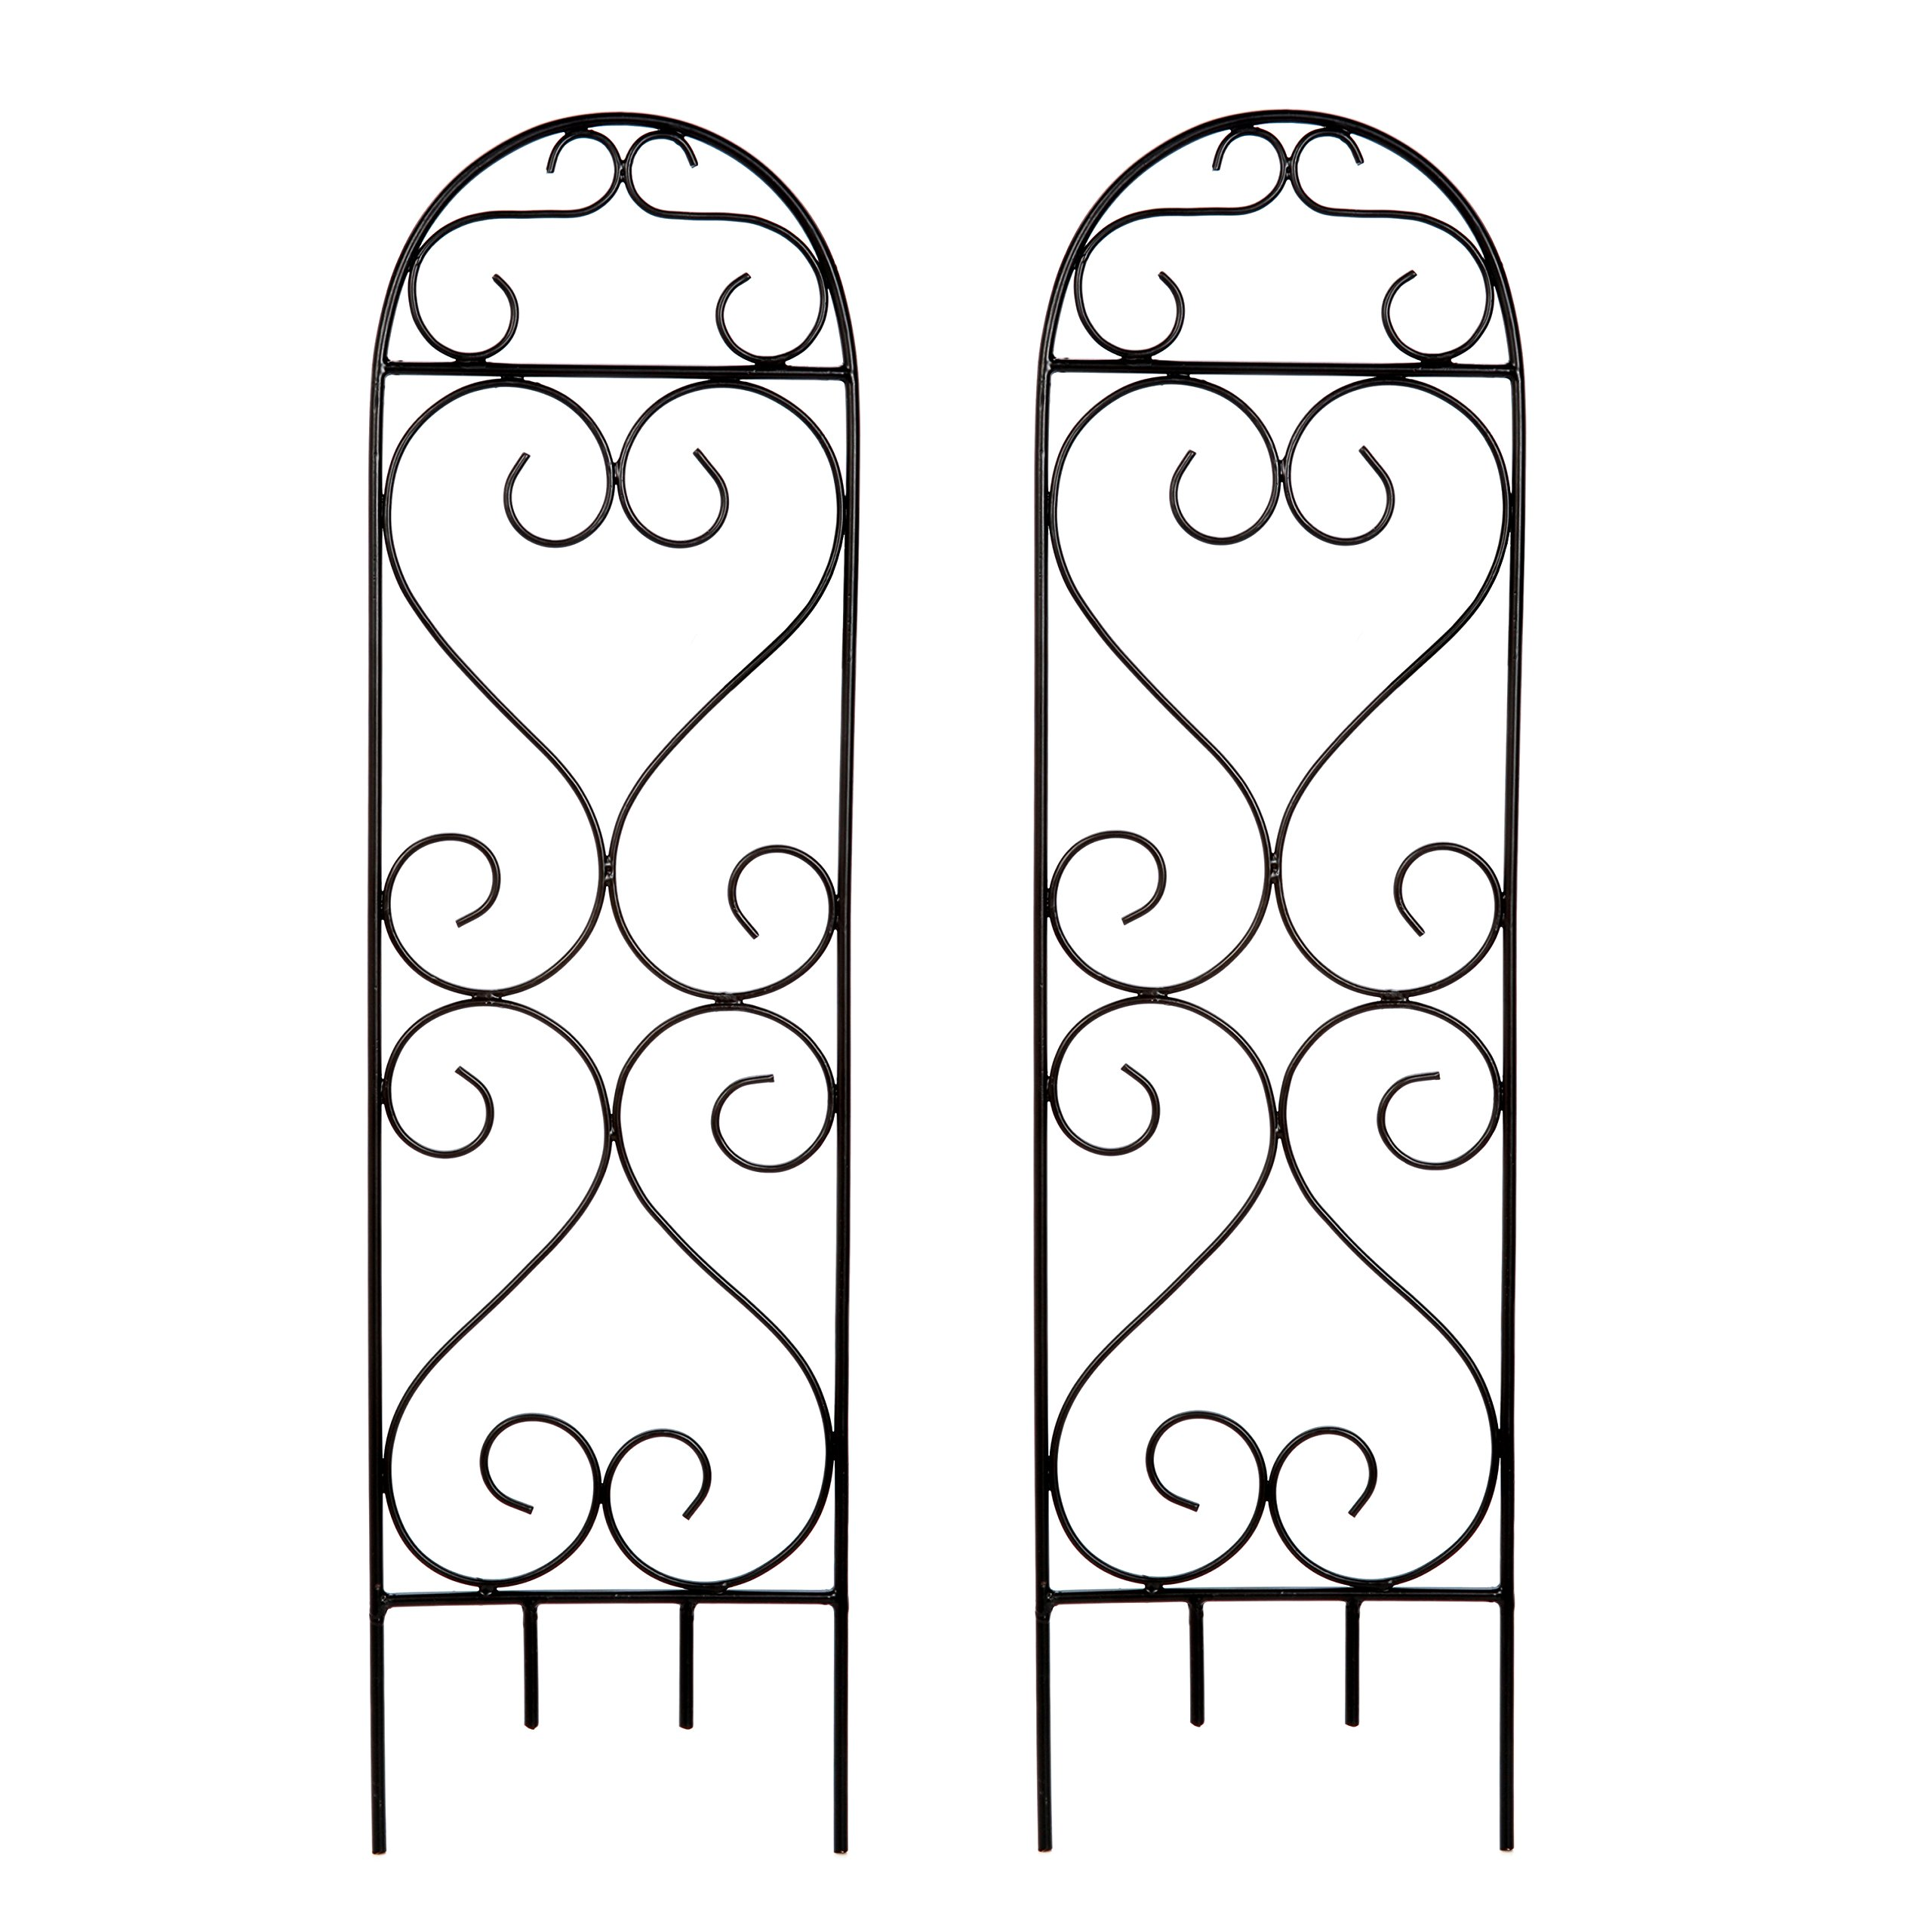 """Hosley's Set of 2 Scroll Planter Trellis, 27"""" High. Ideal Gift for Wedding or Party and Use Next to Structures (Home or Office) or in Planters for Growing Floral, Plants, Vines and Vegetables O4"""